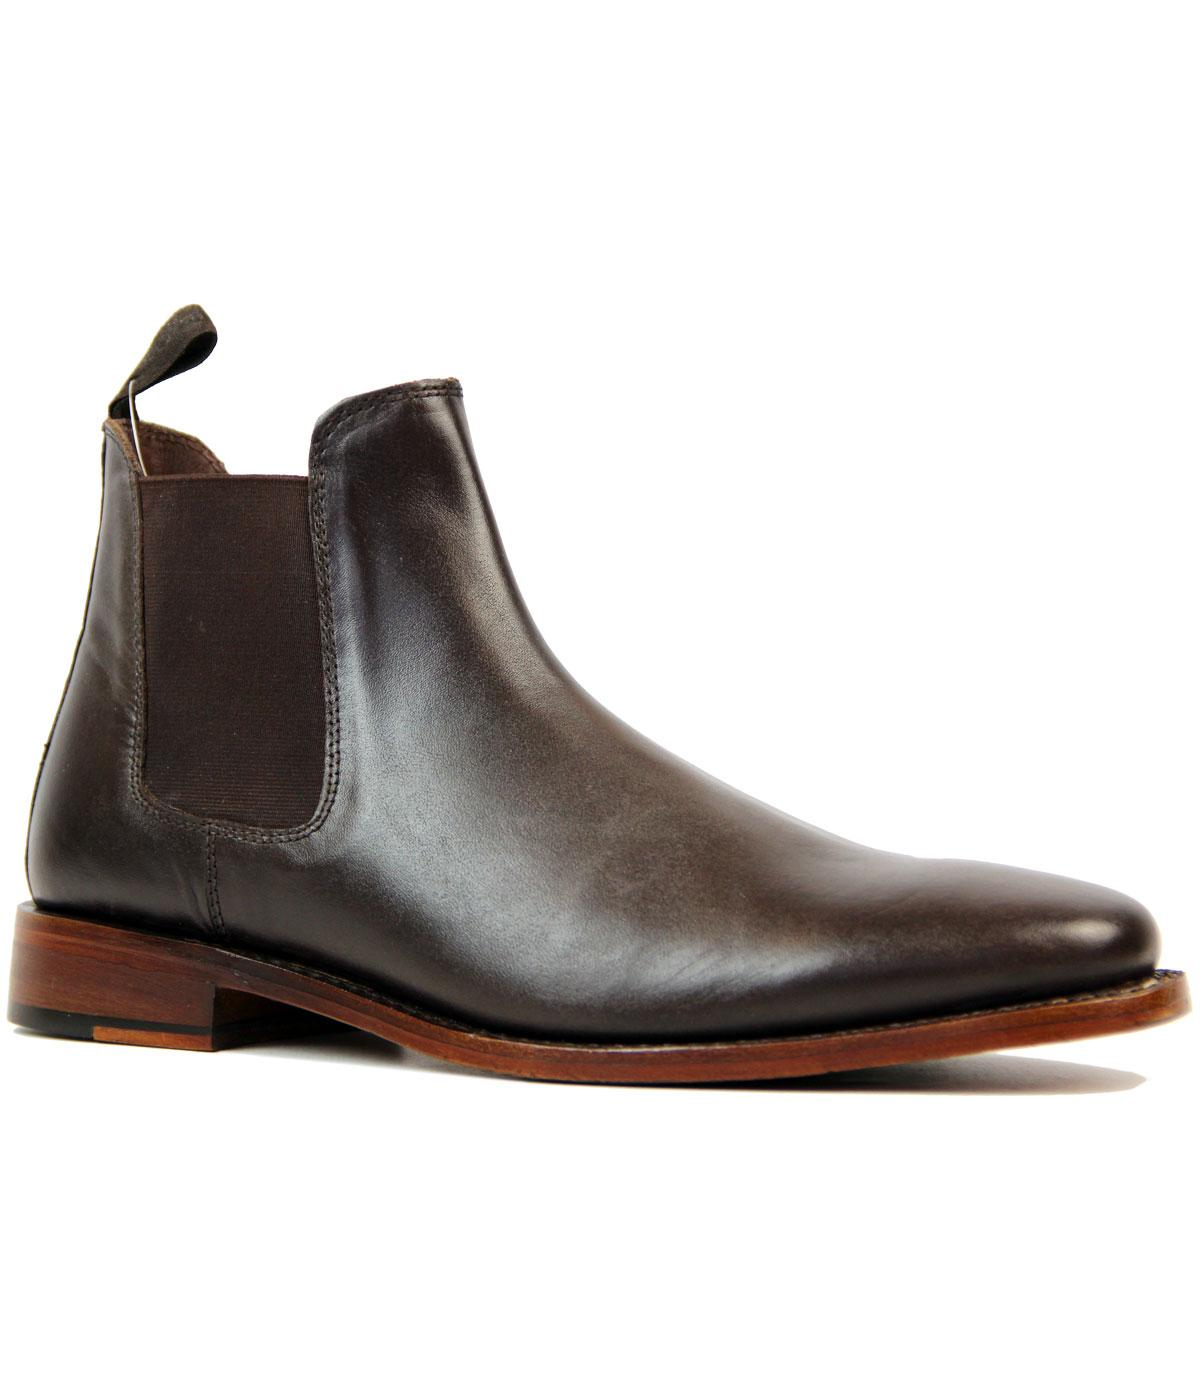 KENSINGTON 60s Mod Goodyear Welted Chelsea Boots